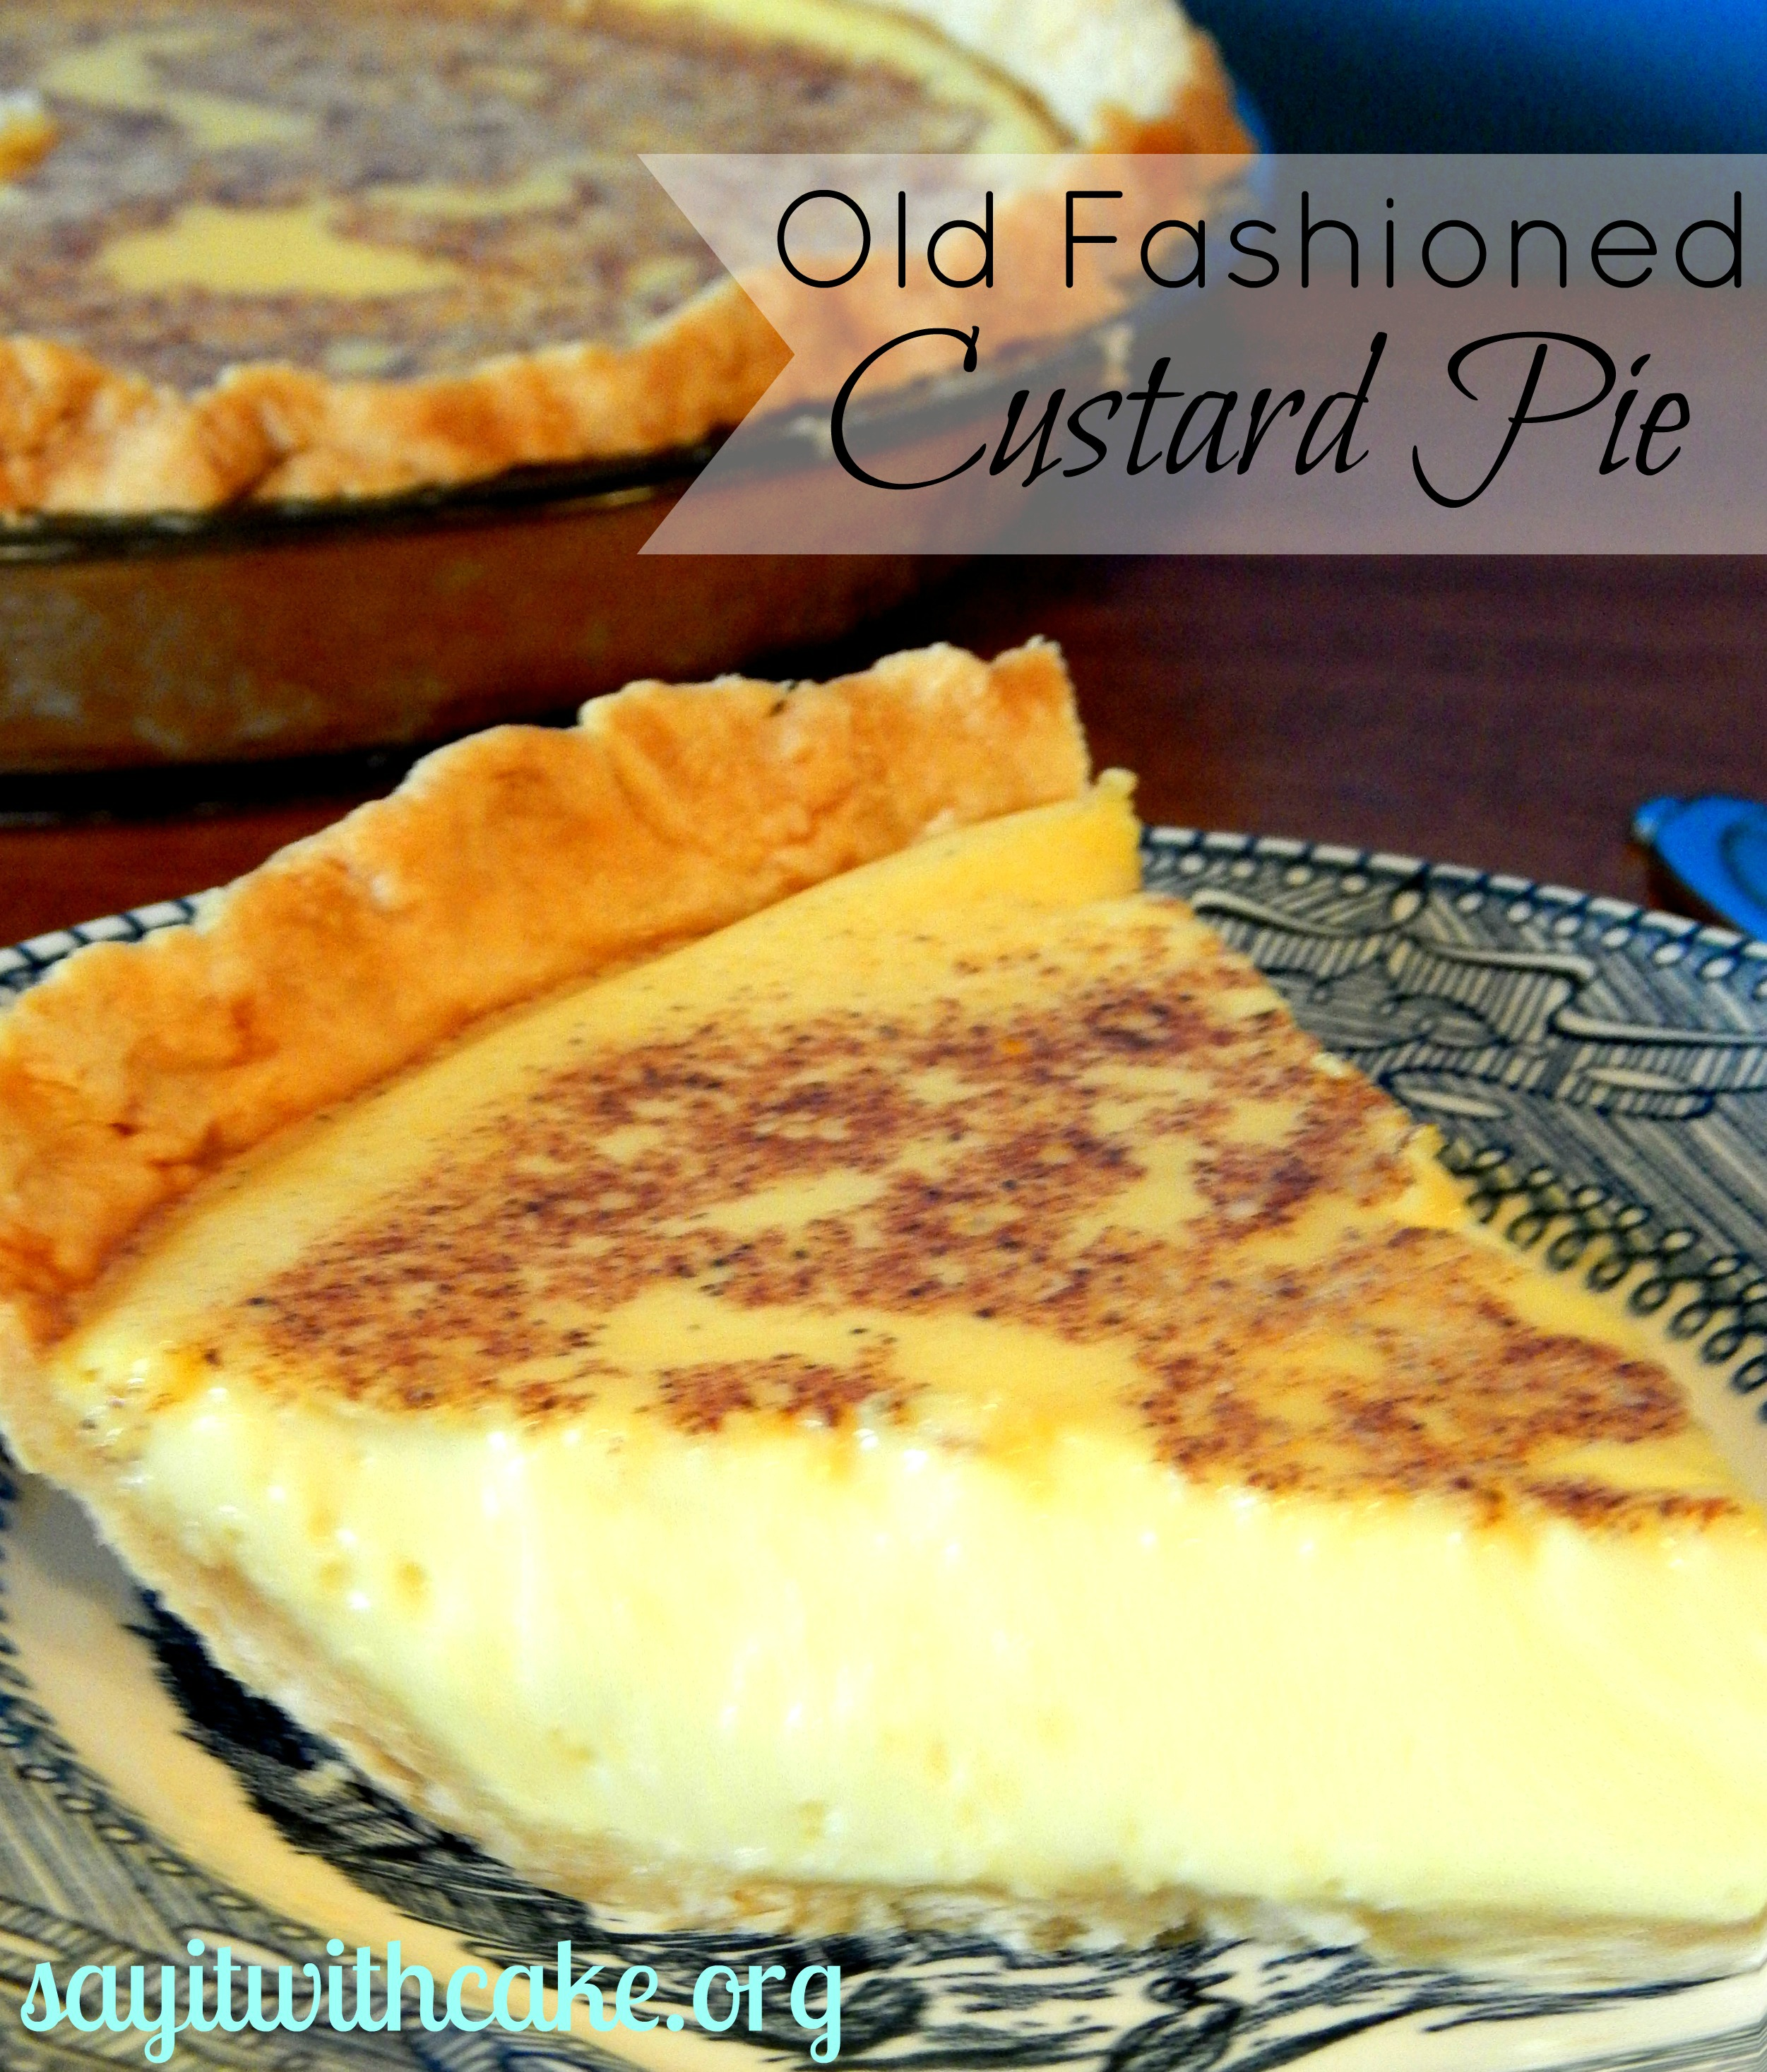 The Best Old Fashioned Custard Pie Say It With Cake